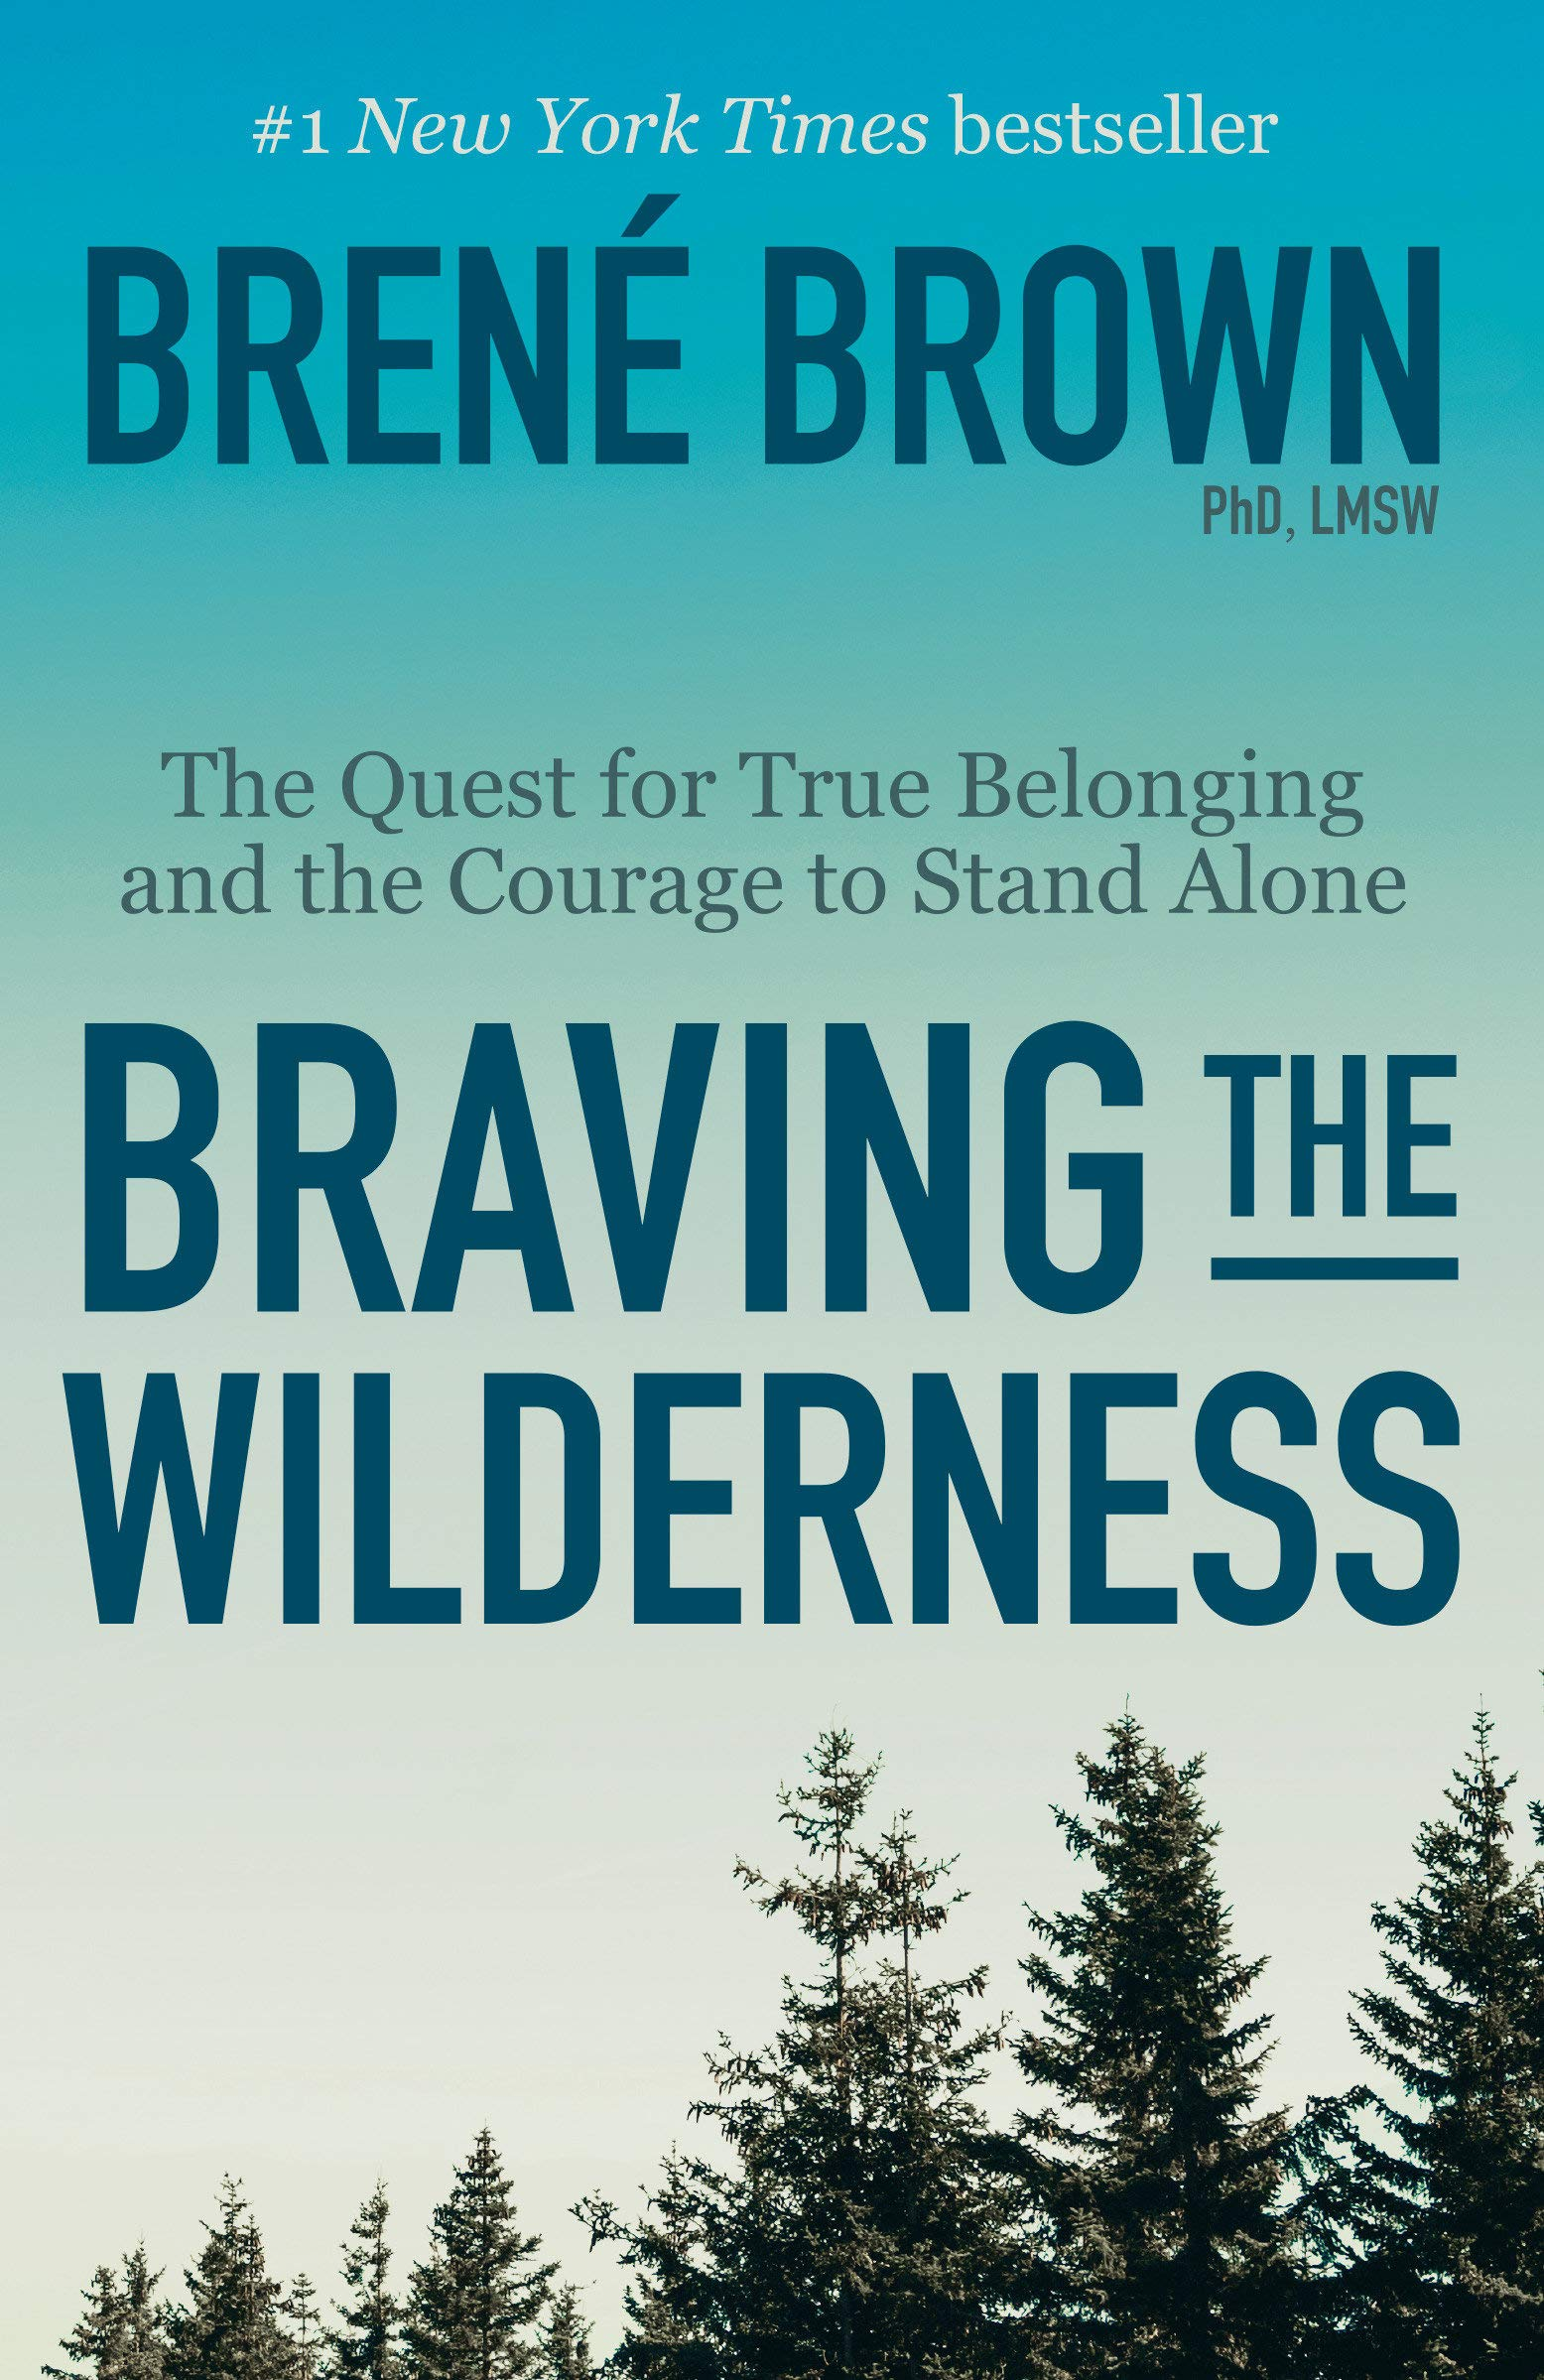 https://www.amazon.com/Braving-Wilderness-Quest-Belonging-Courage/dp/0812985818/ref=sr_1_1?keywords=Braving+the+Wilderness%3A+The+Quest+for+True+Belonging+and+the+Courage+to+Stand+Alone&qid=1575396513&sr=8-1